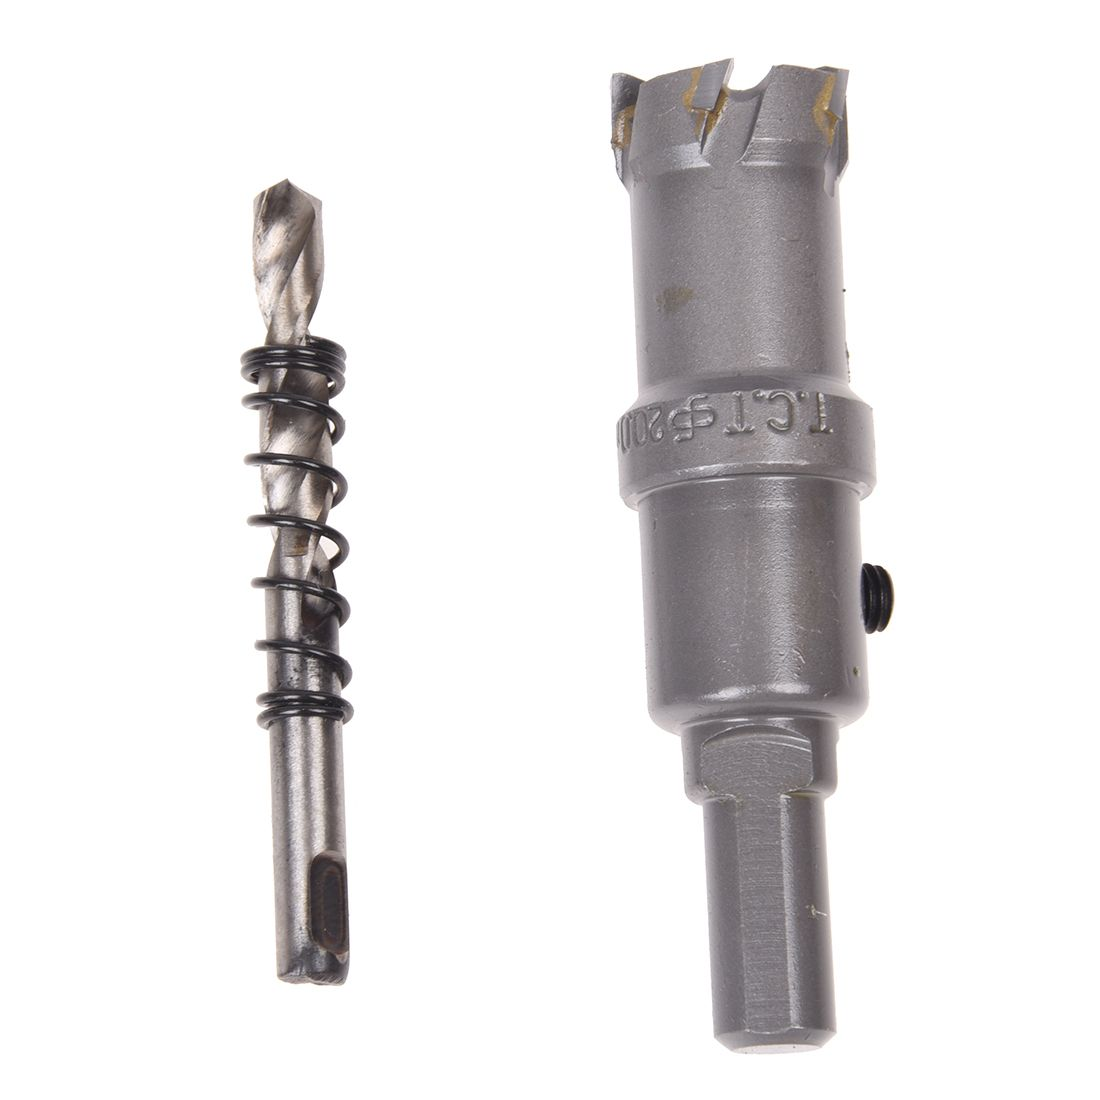 Shank 6mm Twist Drill Bit 20mm Stainless Steel Hole Saw #Affiliate